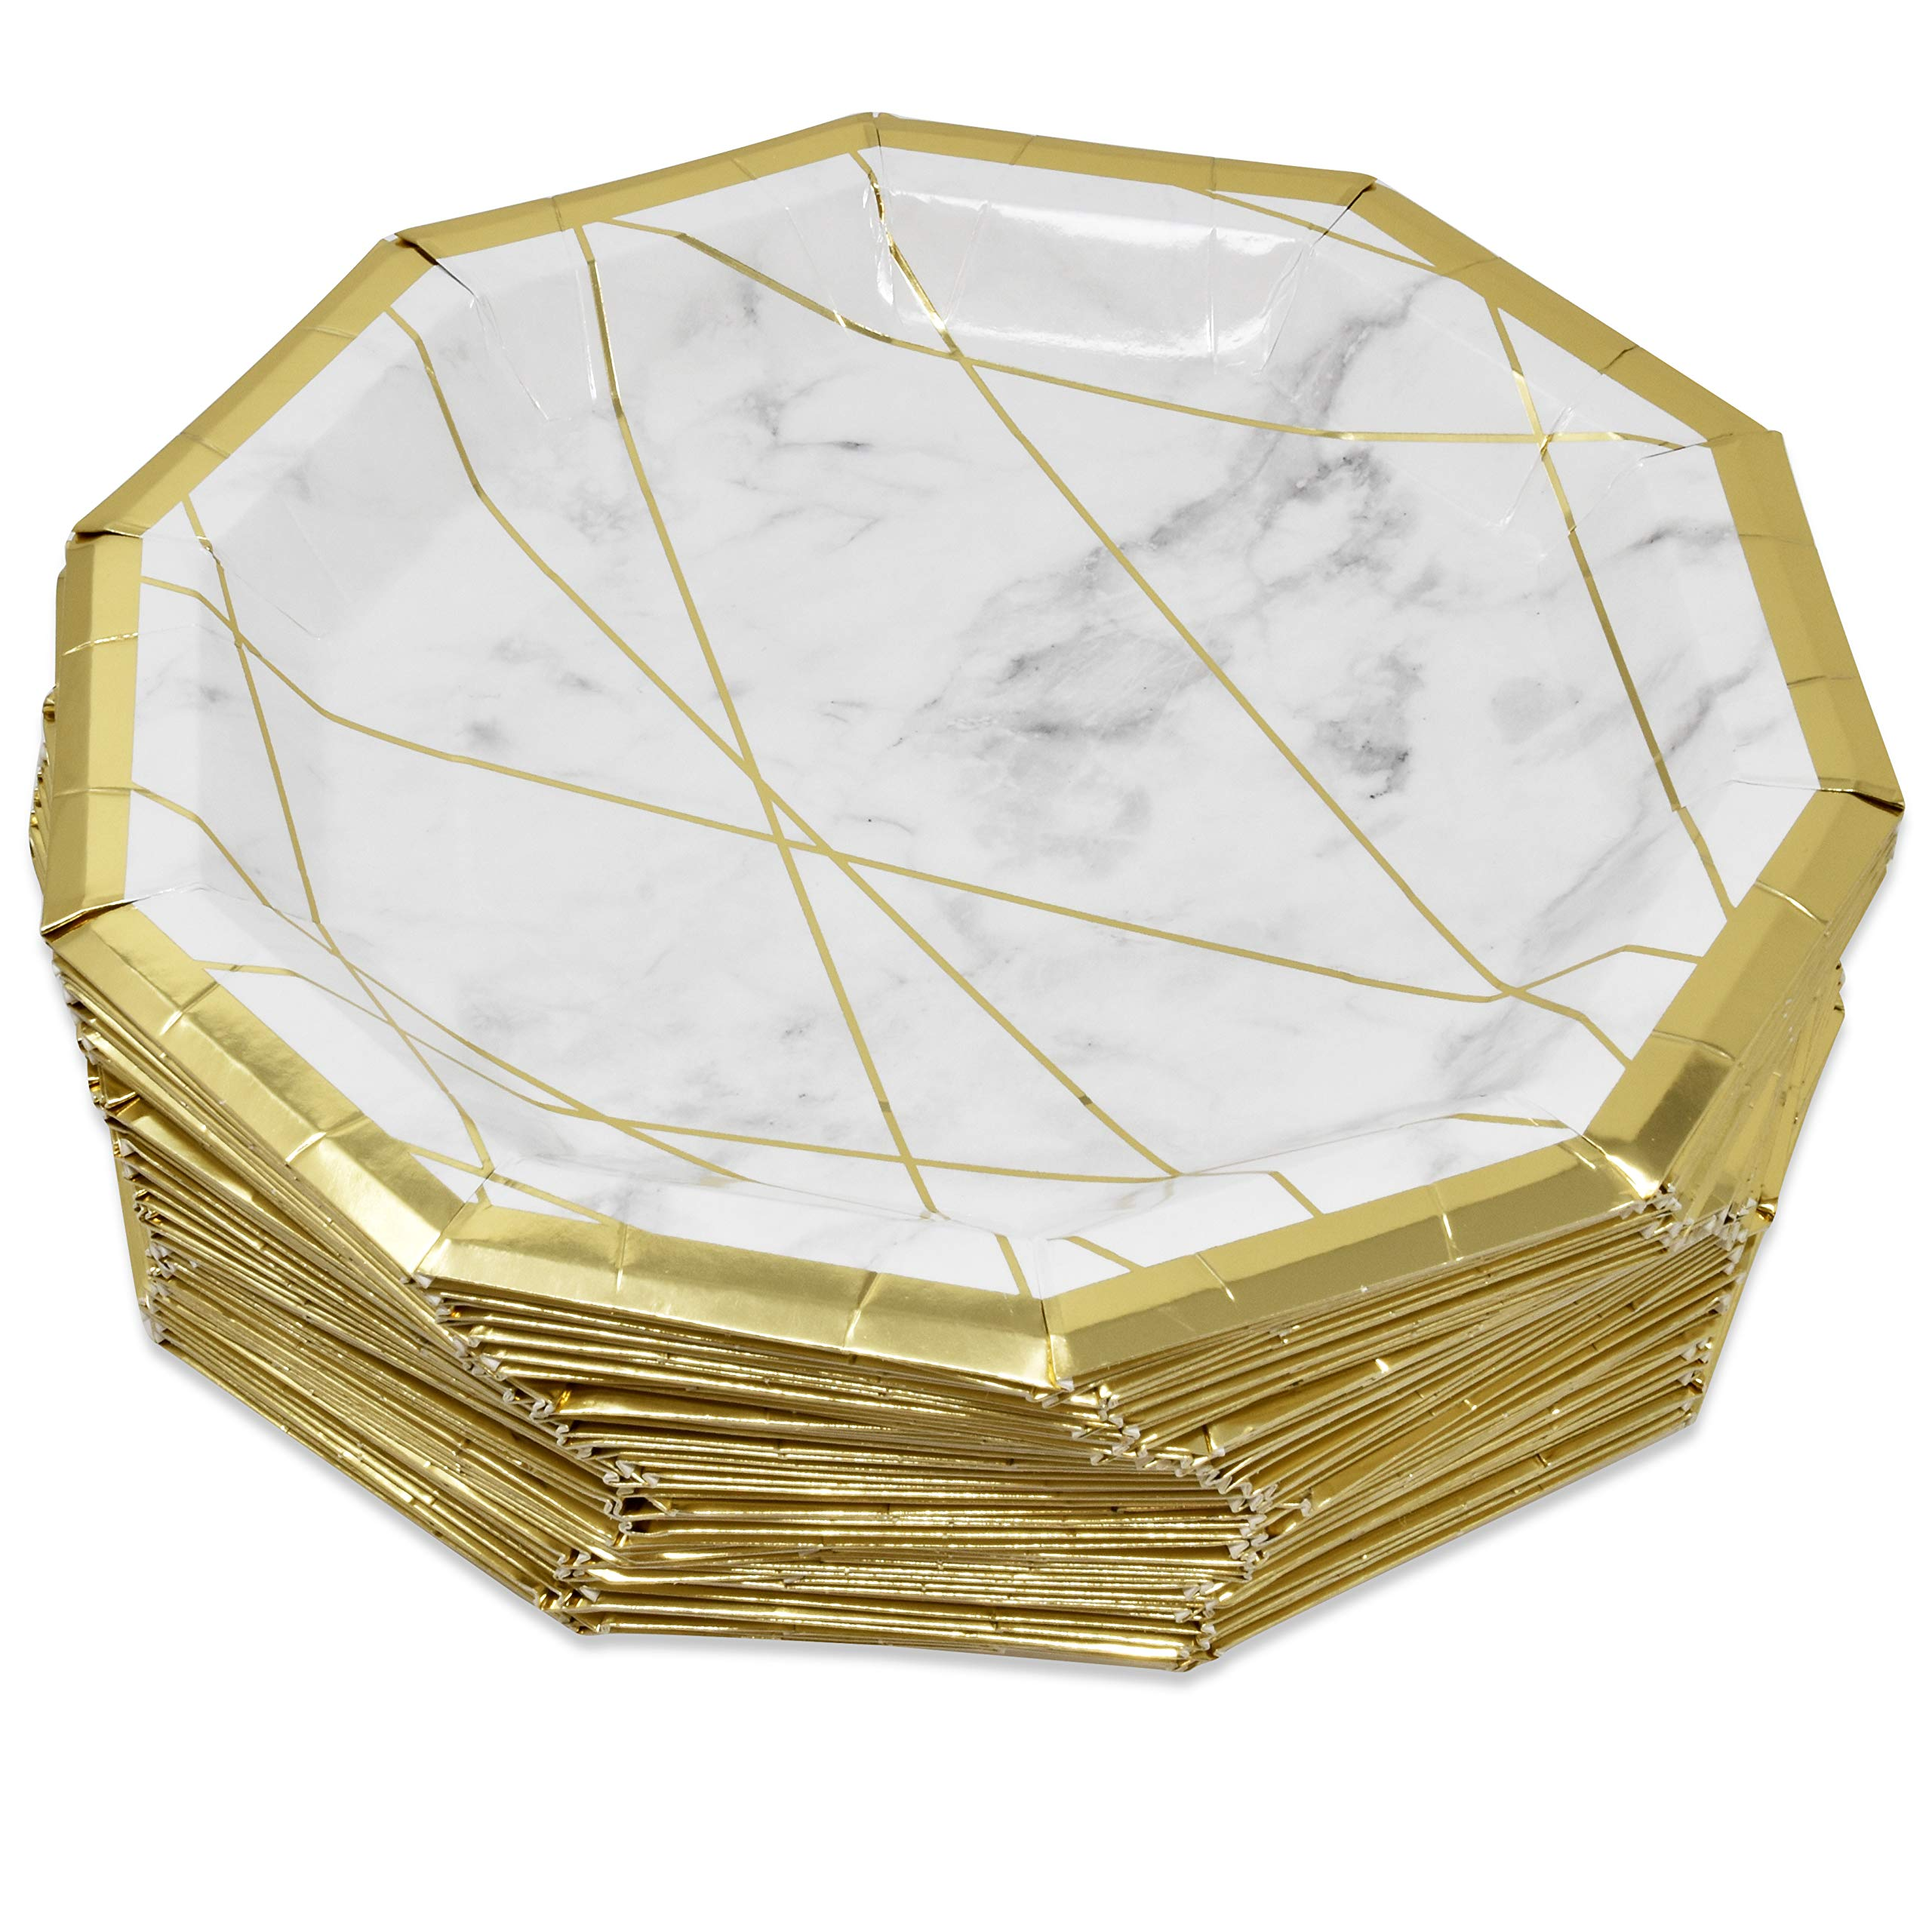 50 Marble Paper Plates Disposable 9'' Elegant Decagon Shape with Gold Foil Border and White & Grey Marbleized Design Dinner Plate for Wedding Bridal Baby Shower Birthday Party Supplies Decorations